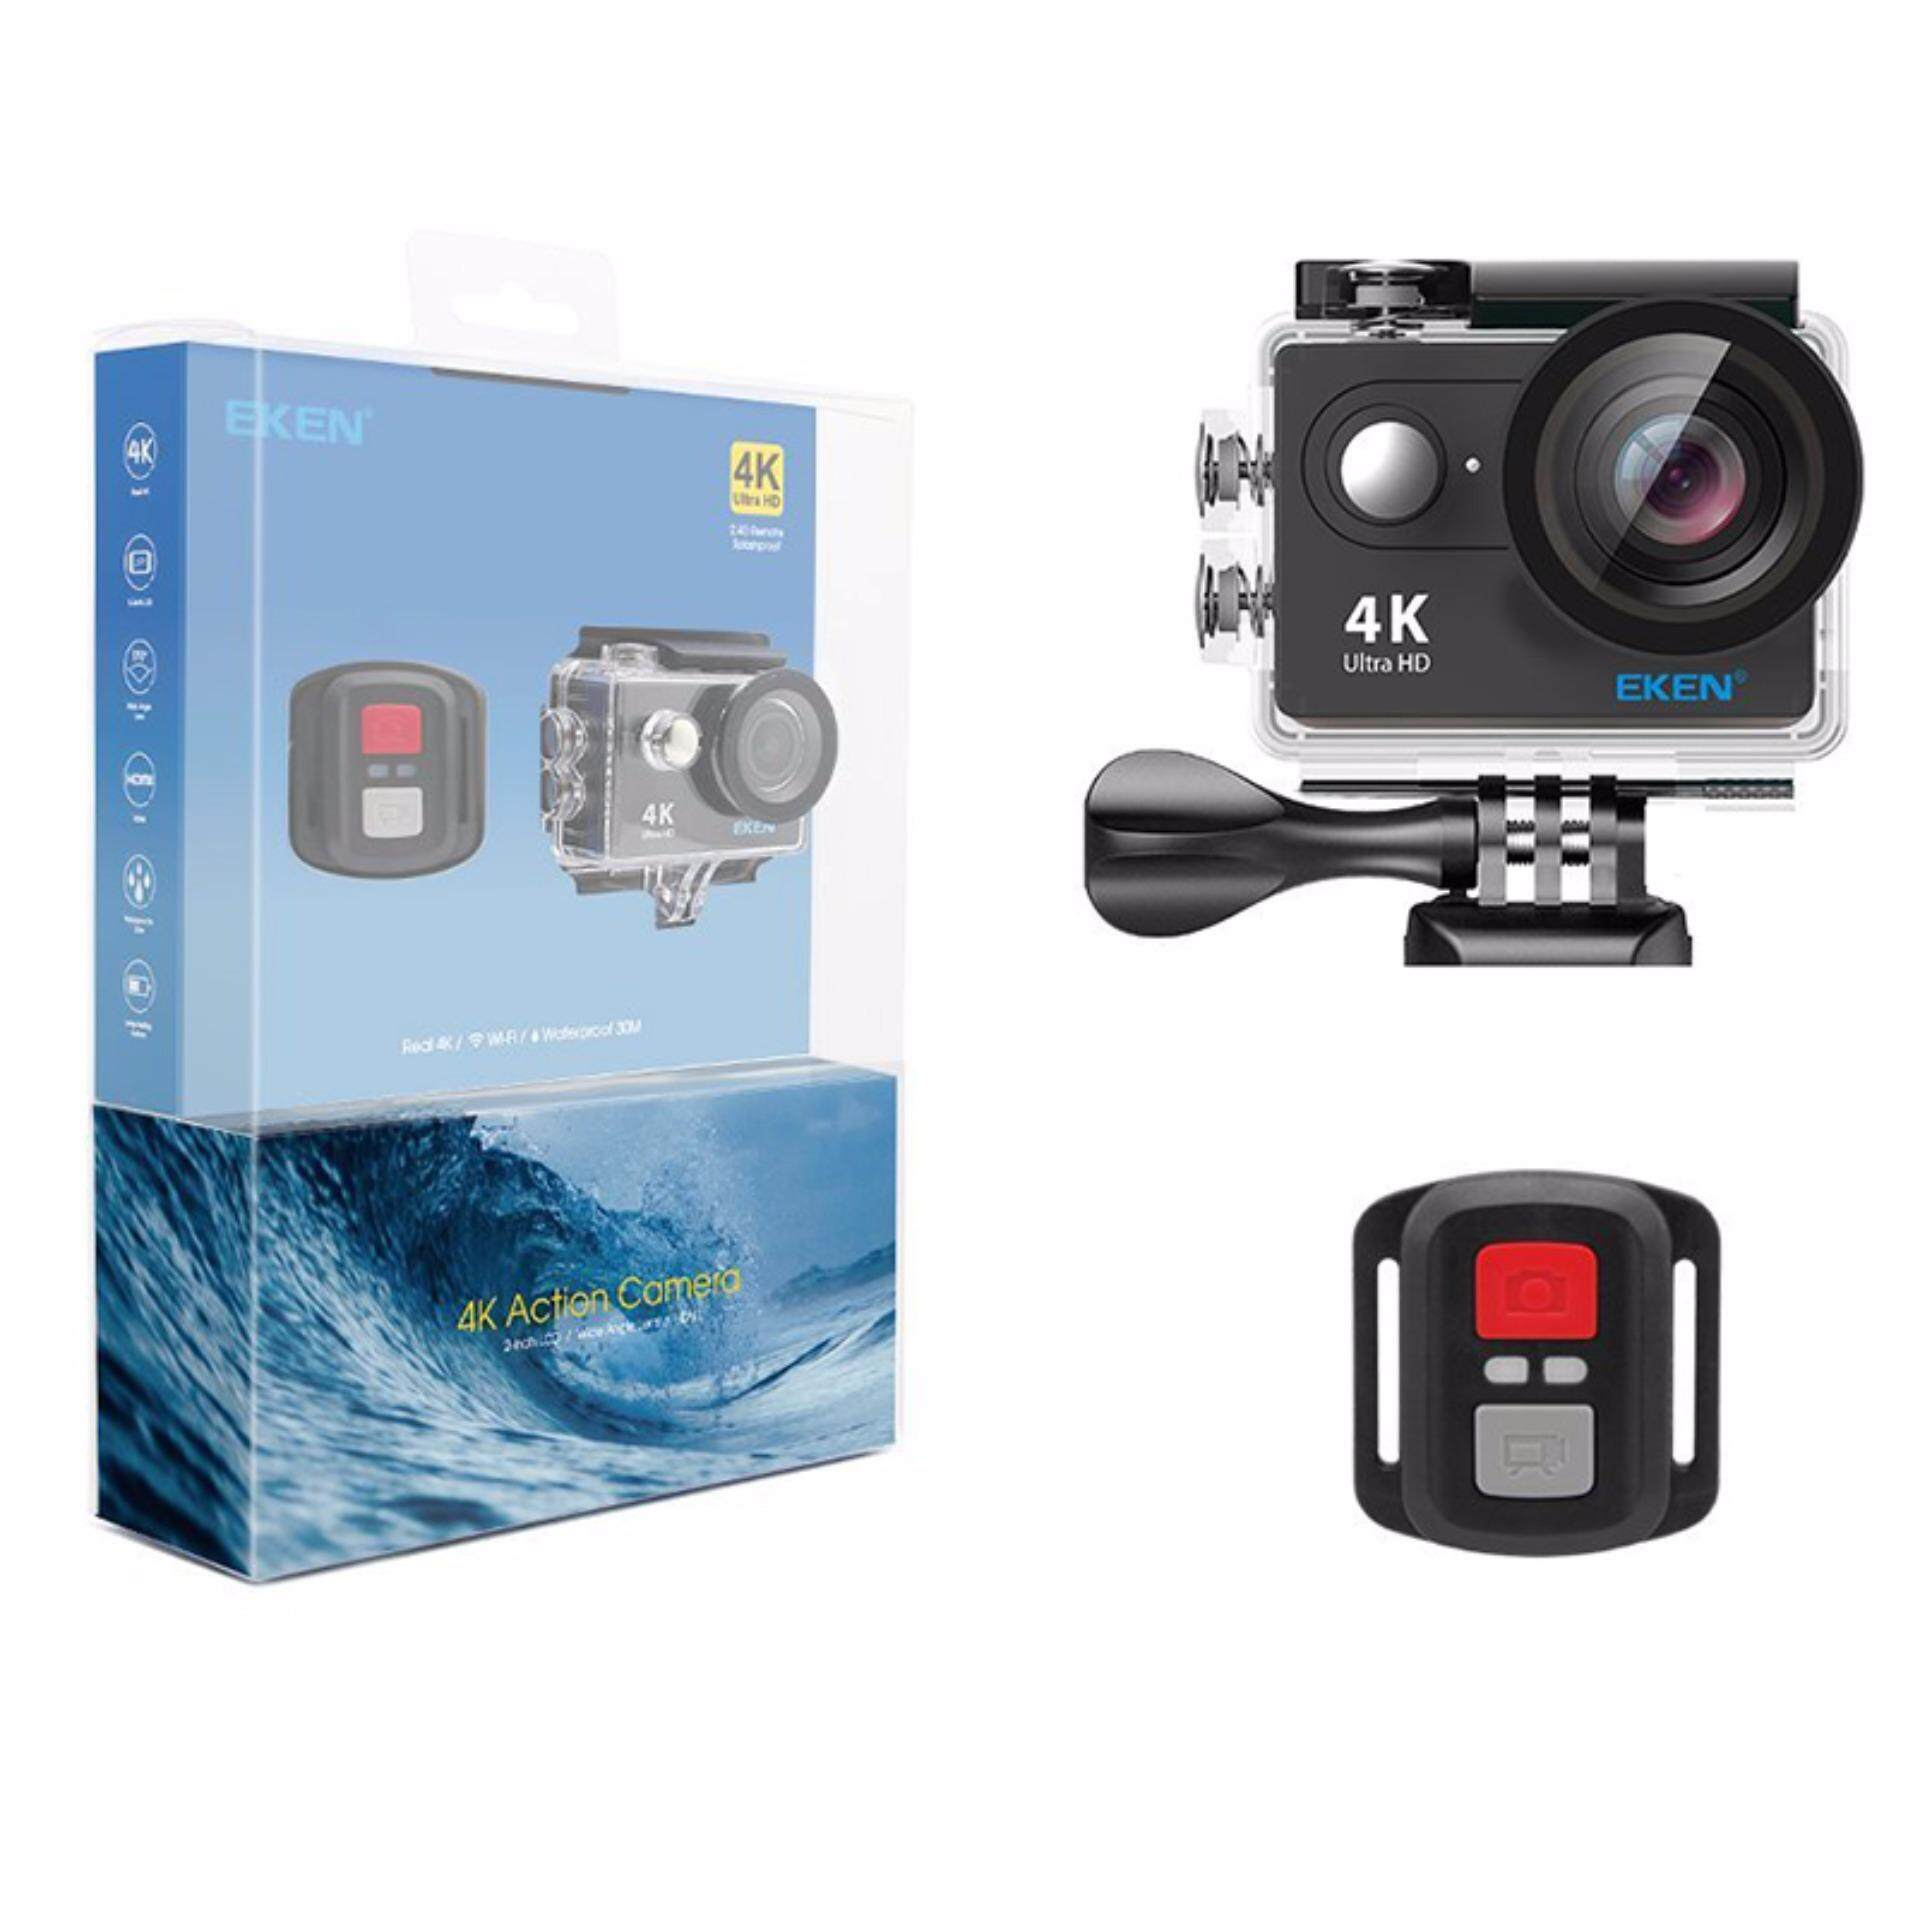 Authentic H9R 4K Action Camera Wifi Sports Cam  (Cheapest Price Guaranteed)